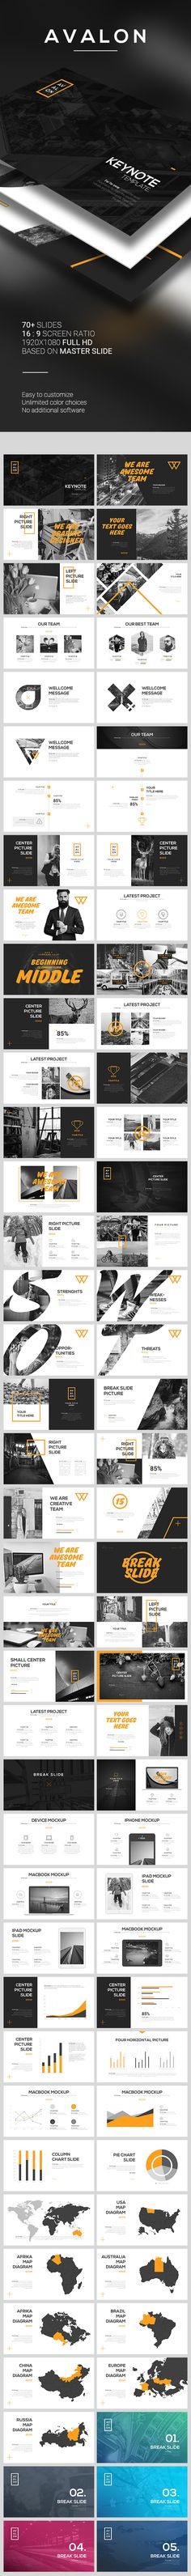 AVALON Keynote Template. Download here: http://graphicriver.net/item/avalon-keynote-template/16149402?ref=ksioks